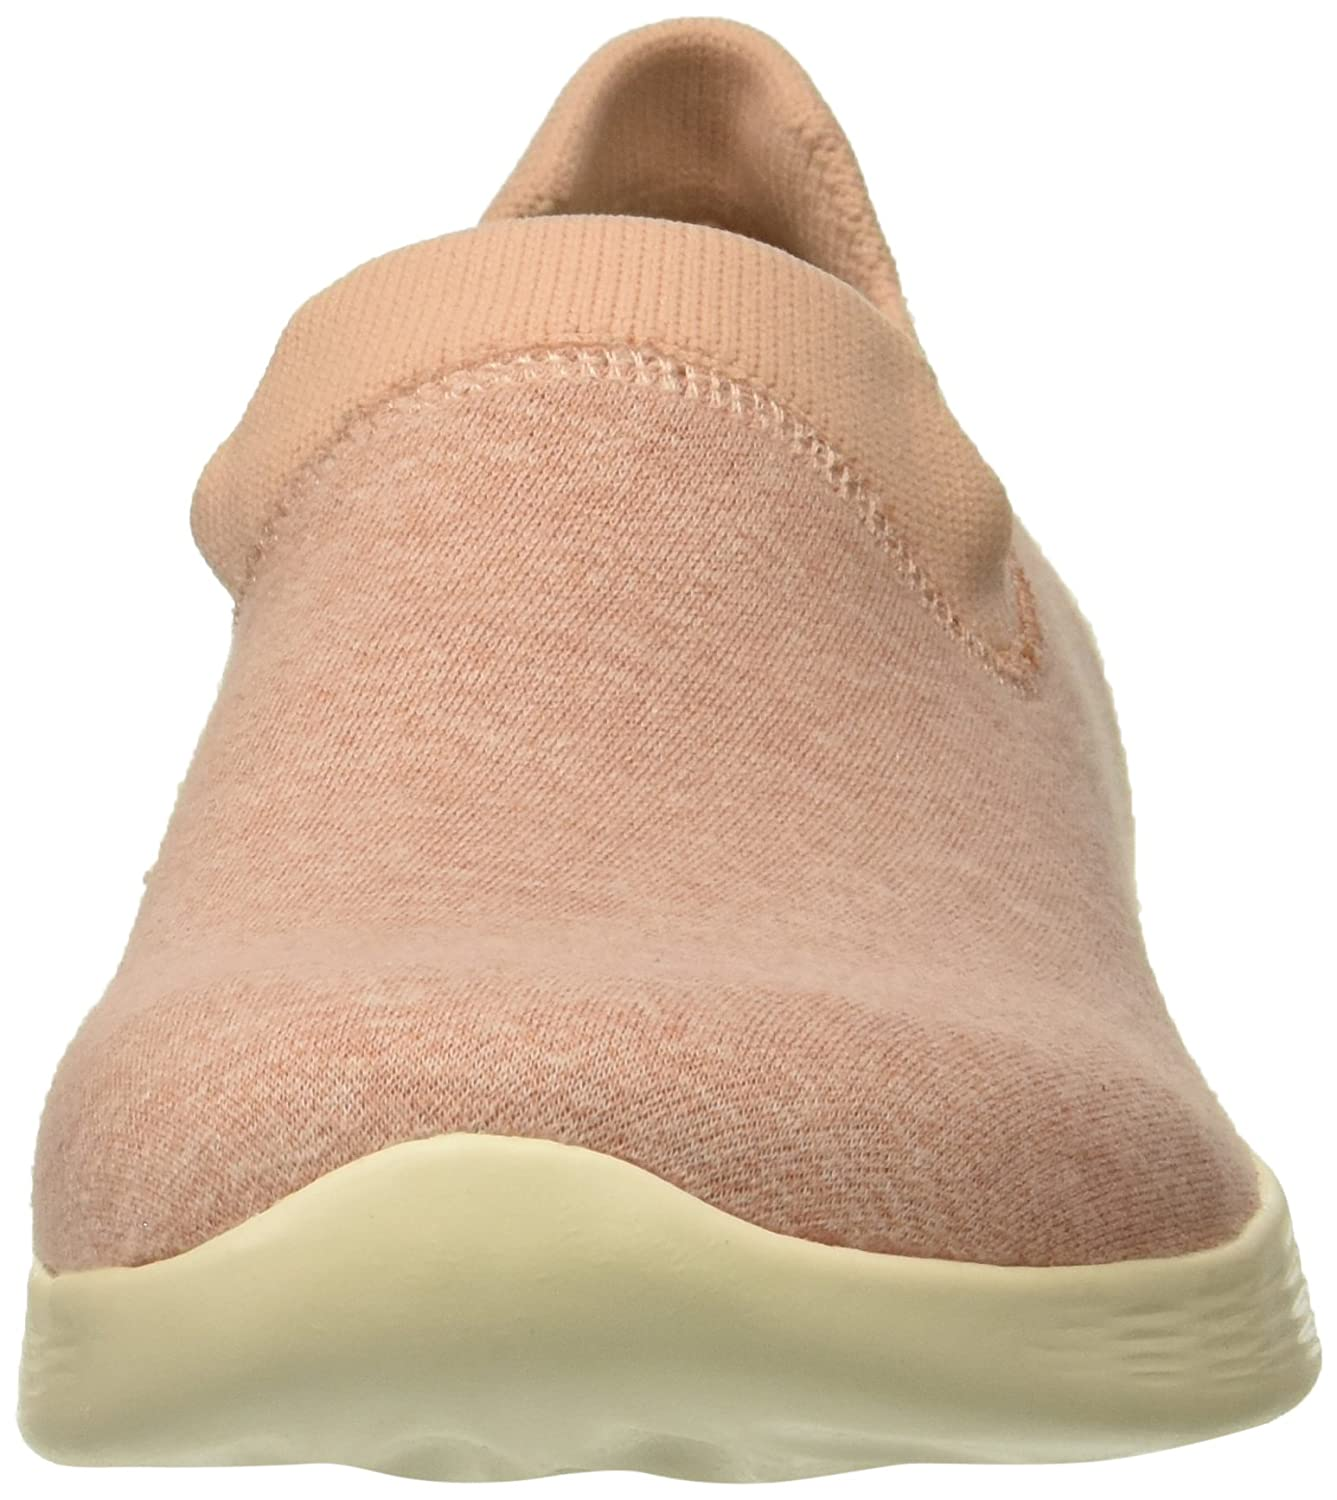 Skechers Damen You Define - Perfection Perfection Perfection Slip On Turnschuhe 60bbb9